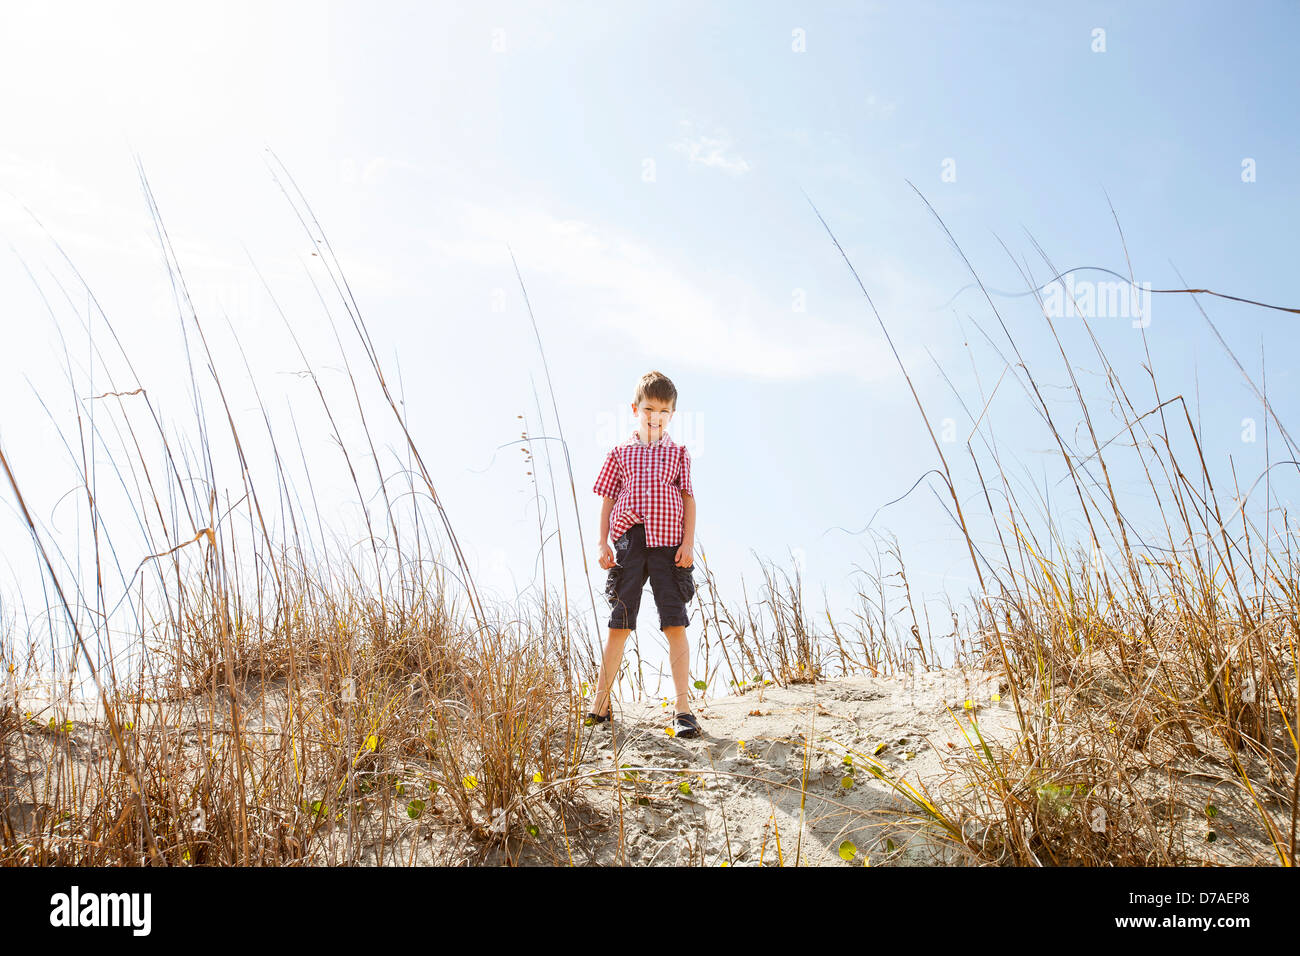 child standing on top of sand dune - Stock Image